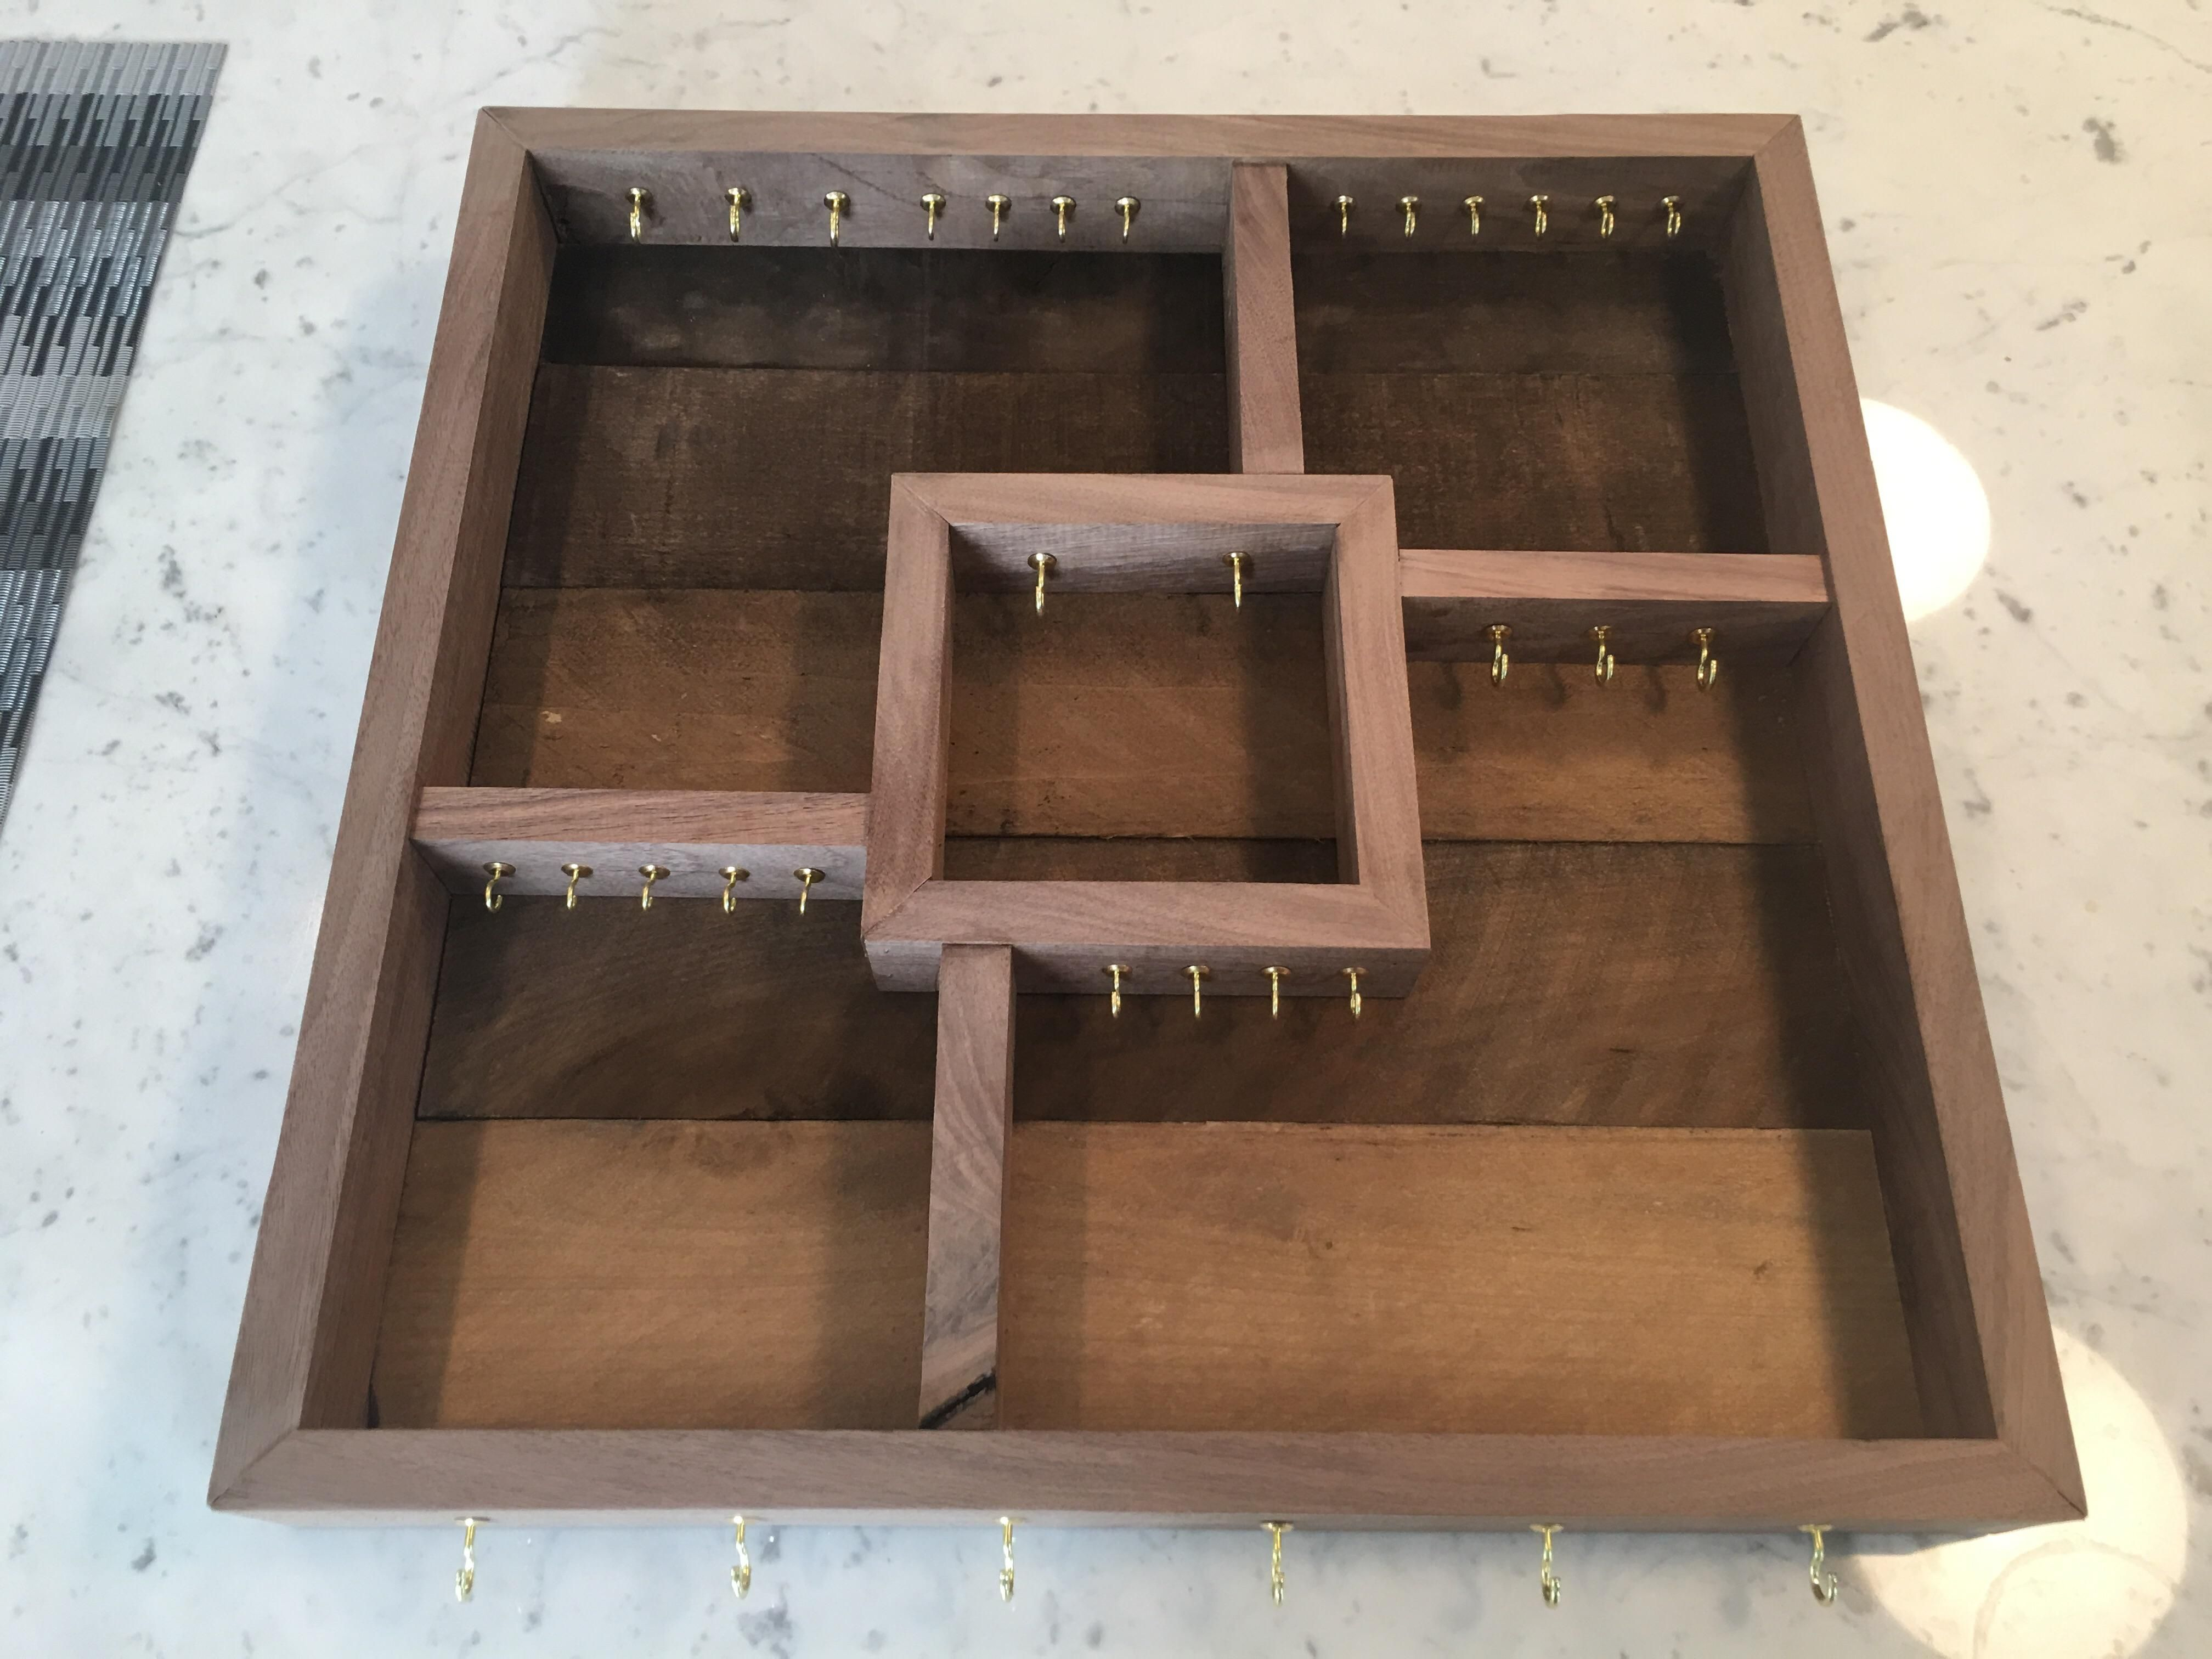 Pin by 923be on Woodworking Pinterest Wall mount jewelry